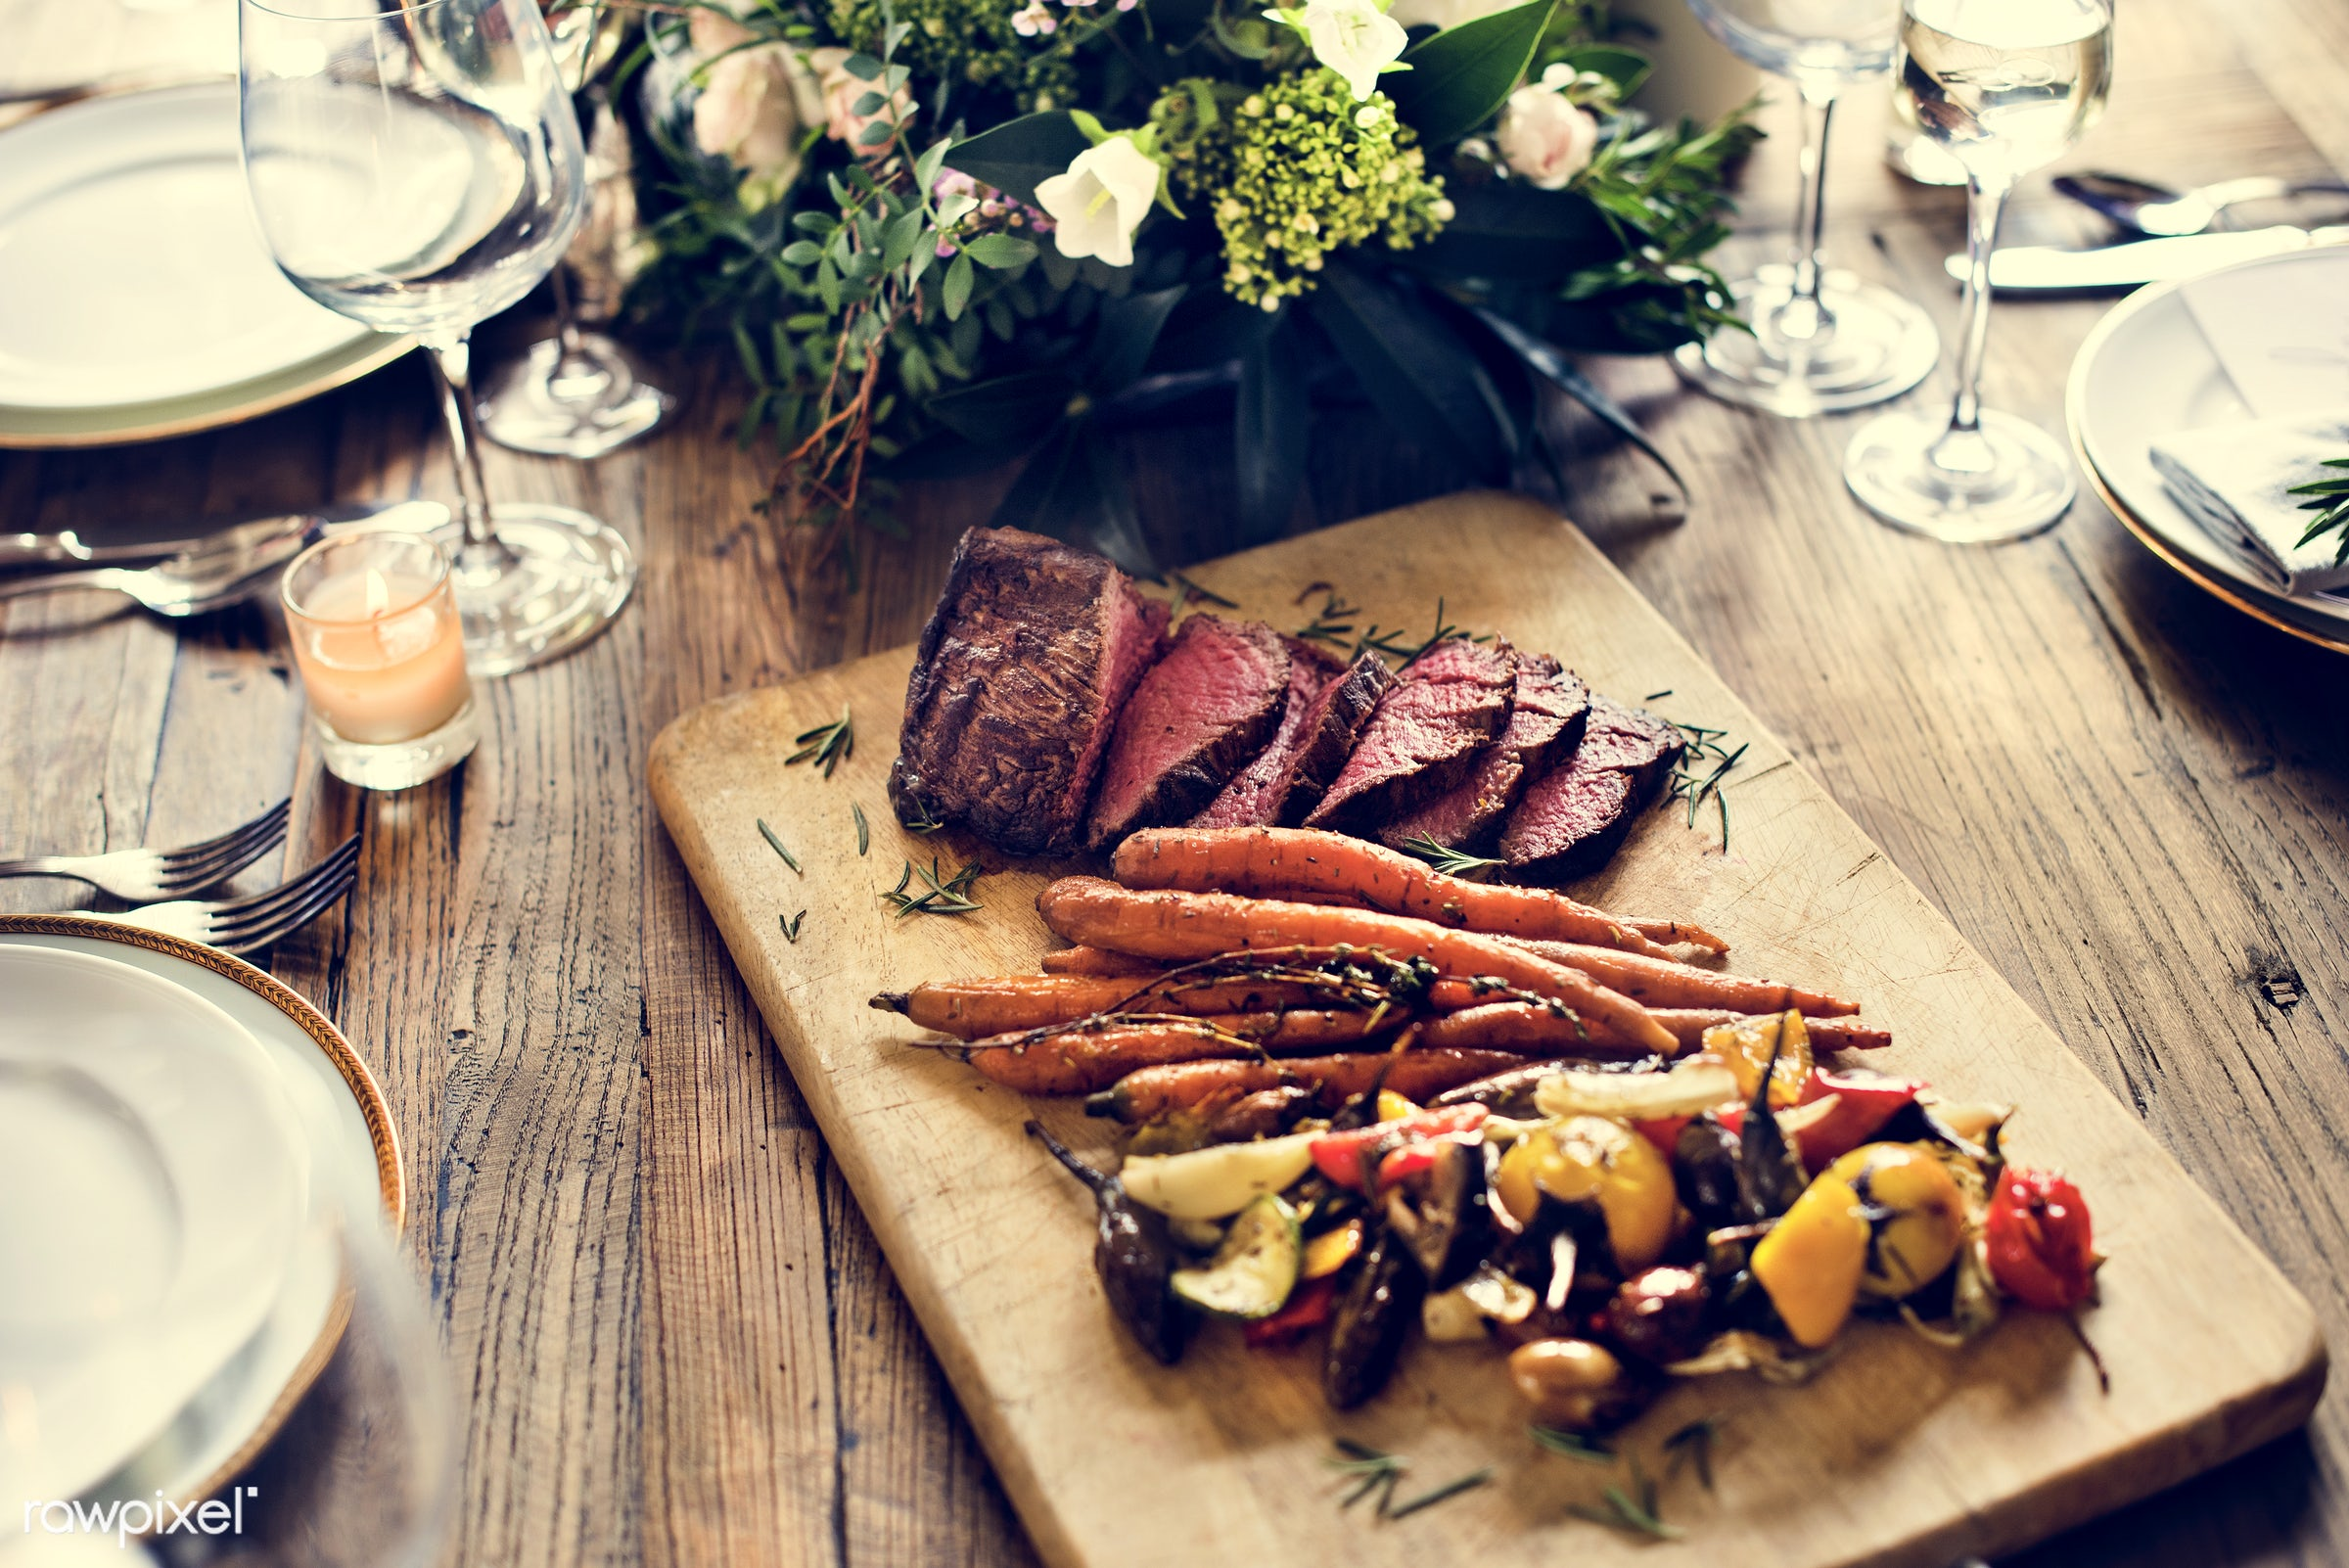 grill, herbs, beef, pepper, cooked, restaurant, spices, meat, bbq, roasted, fillet, gourmet, grilled, meal, steak, roast,...